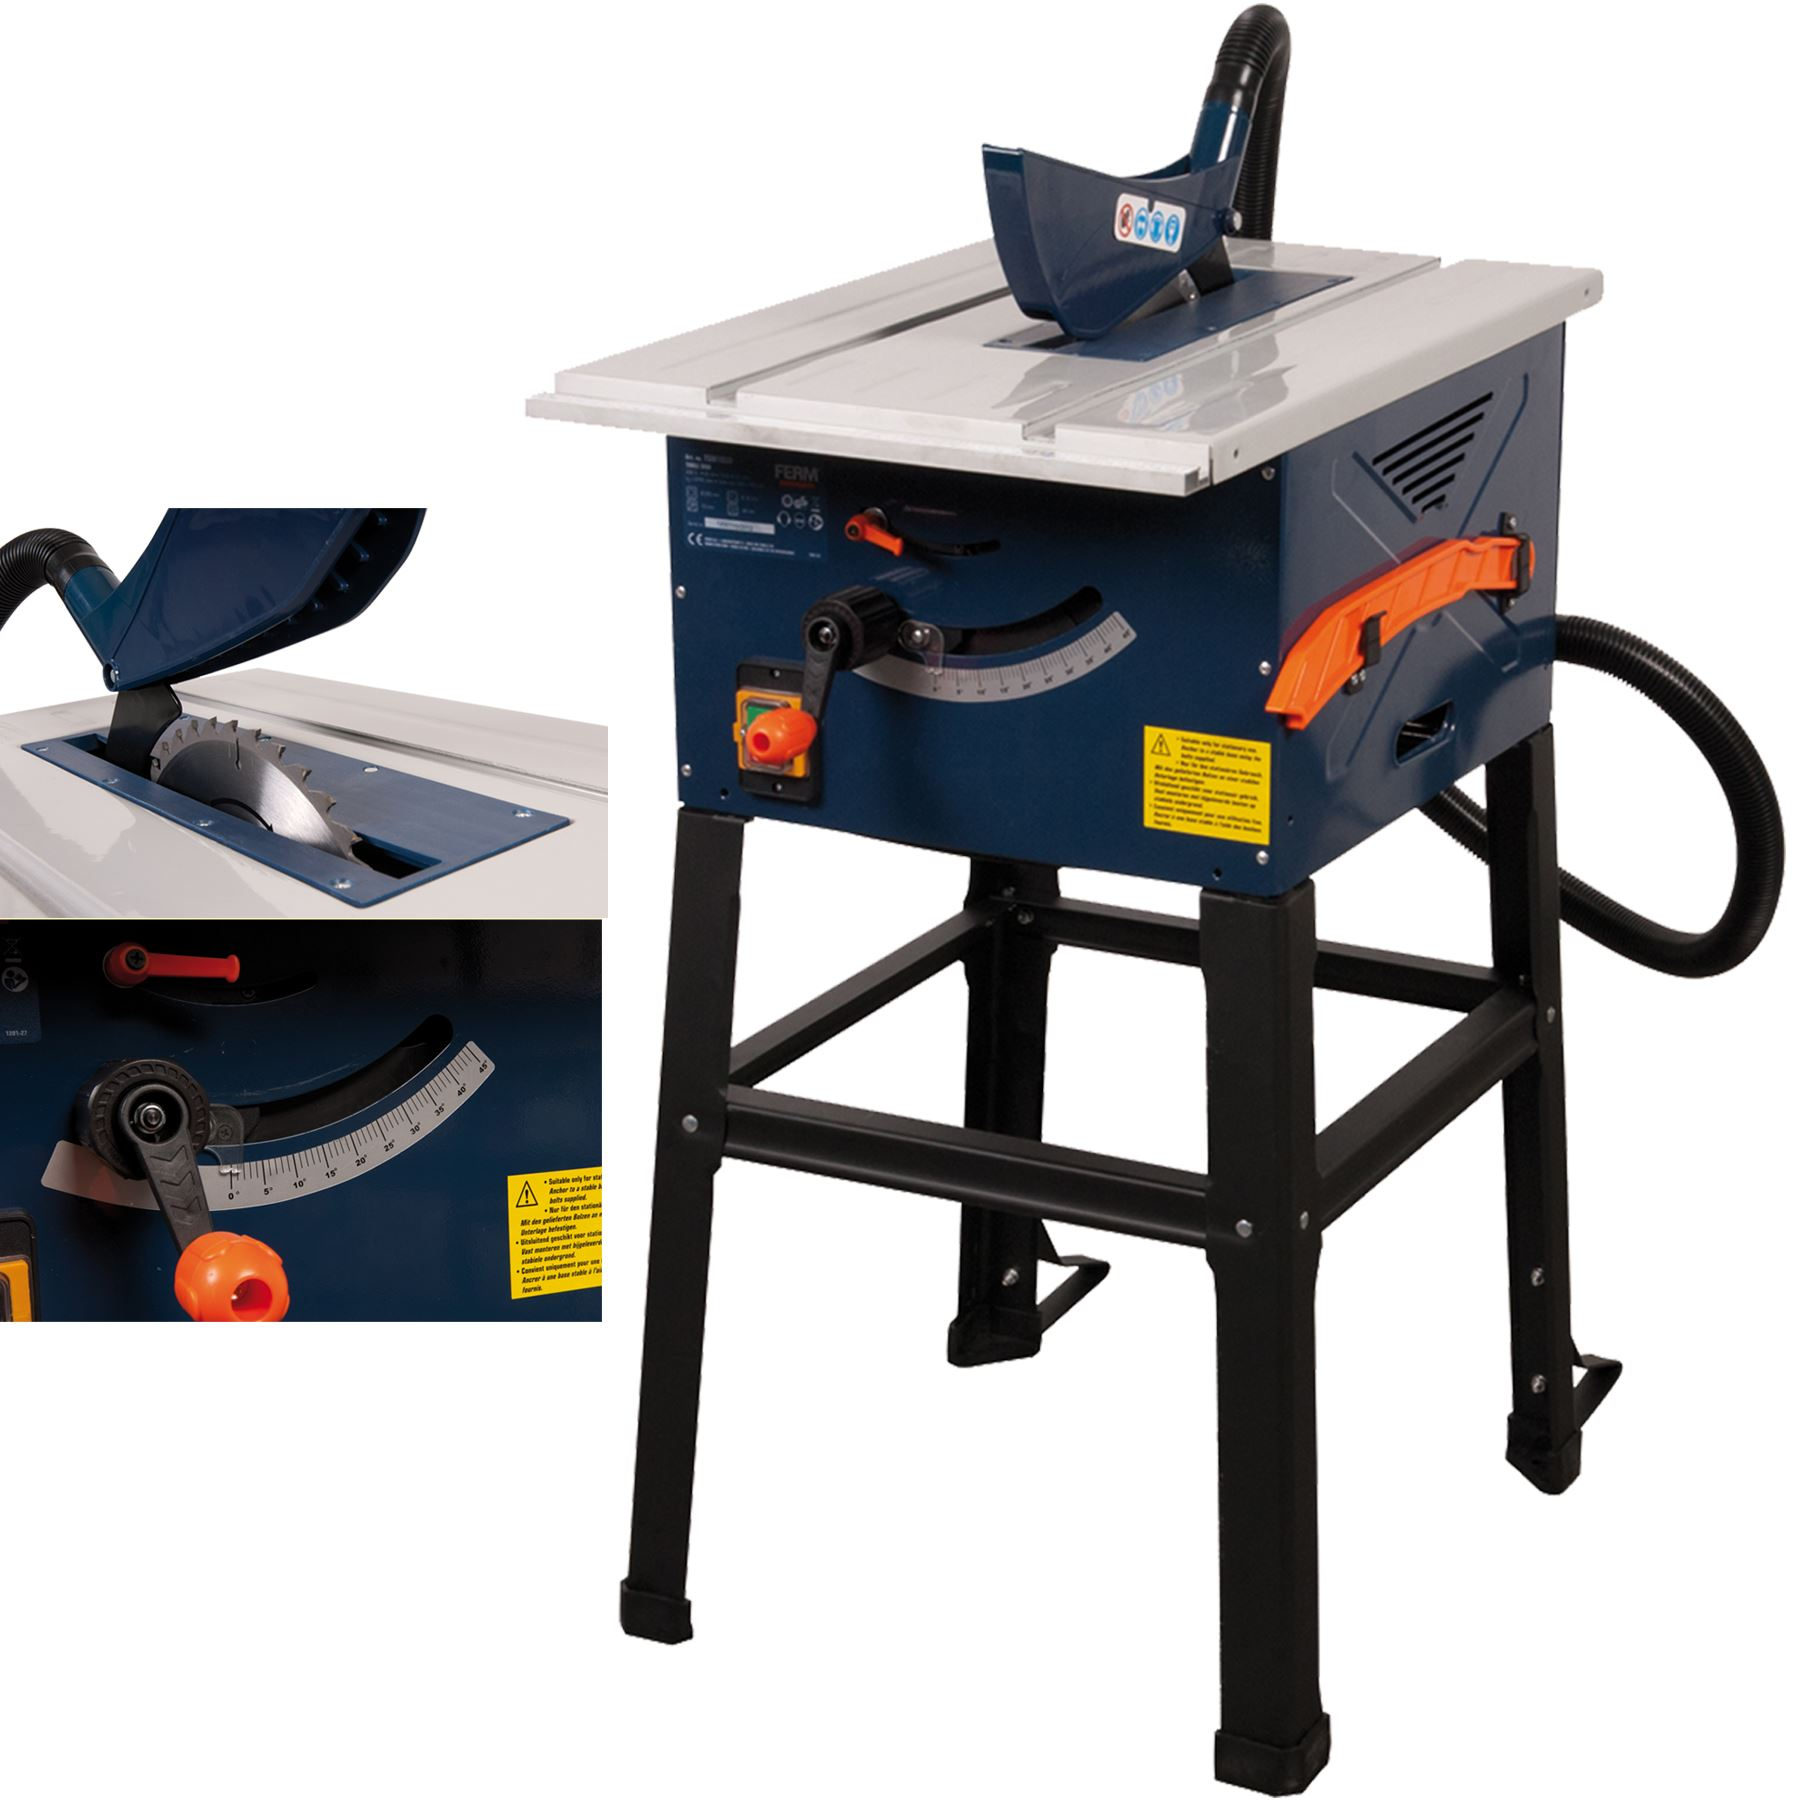 Ferm 1500w Electric Table Saw 250mm 10 Includes Stand Next Day Delivery Ebay